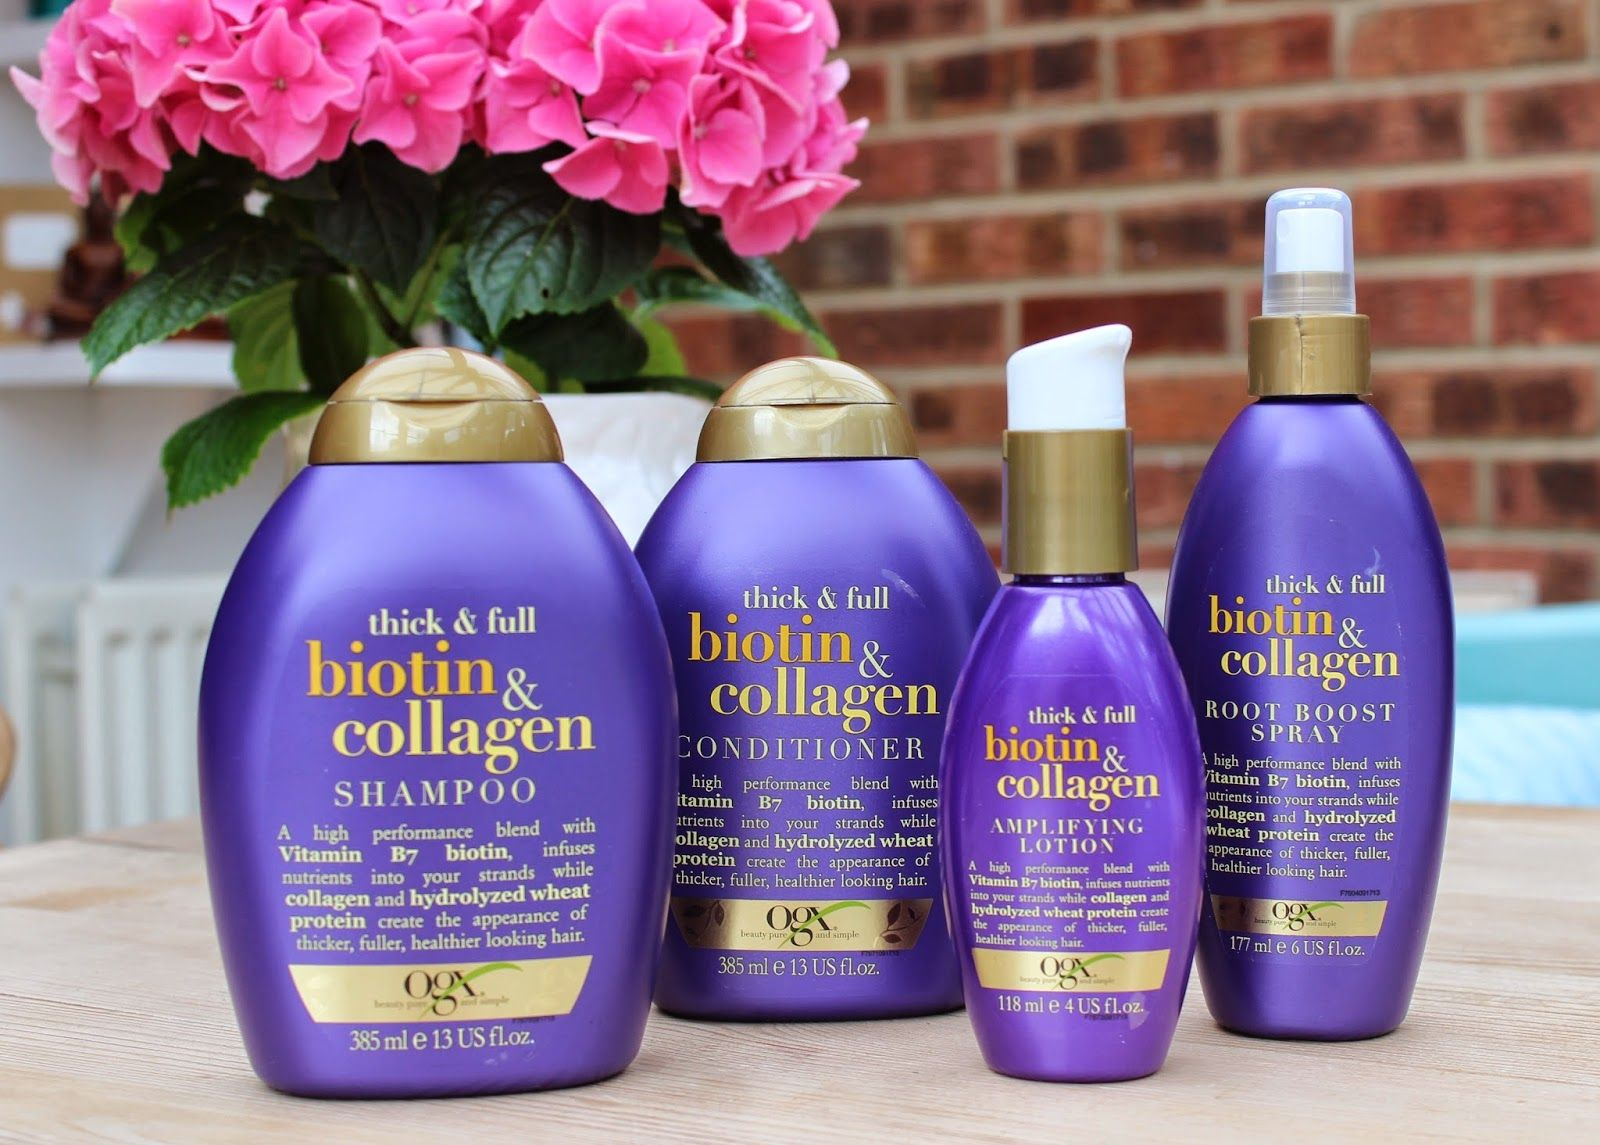 BEAUTY & LE CHIC OGX Thick & Full Biotin & Collagen The